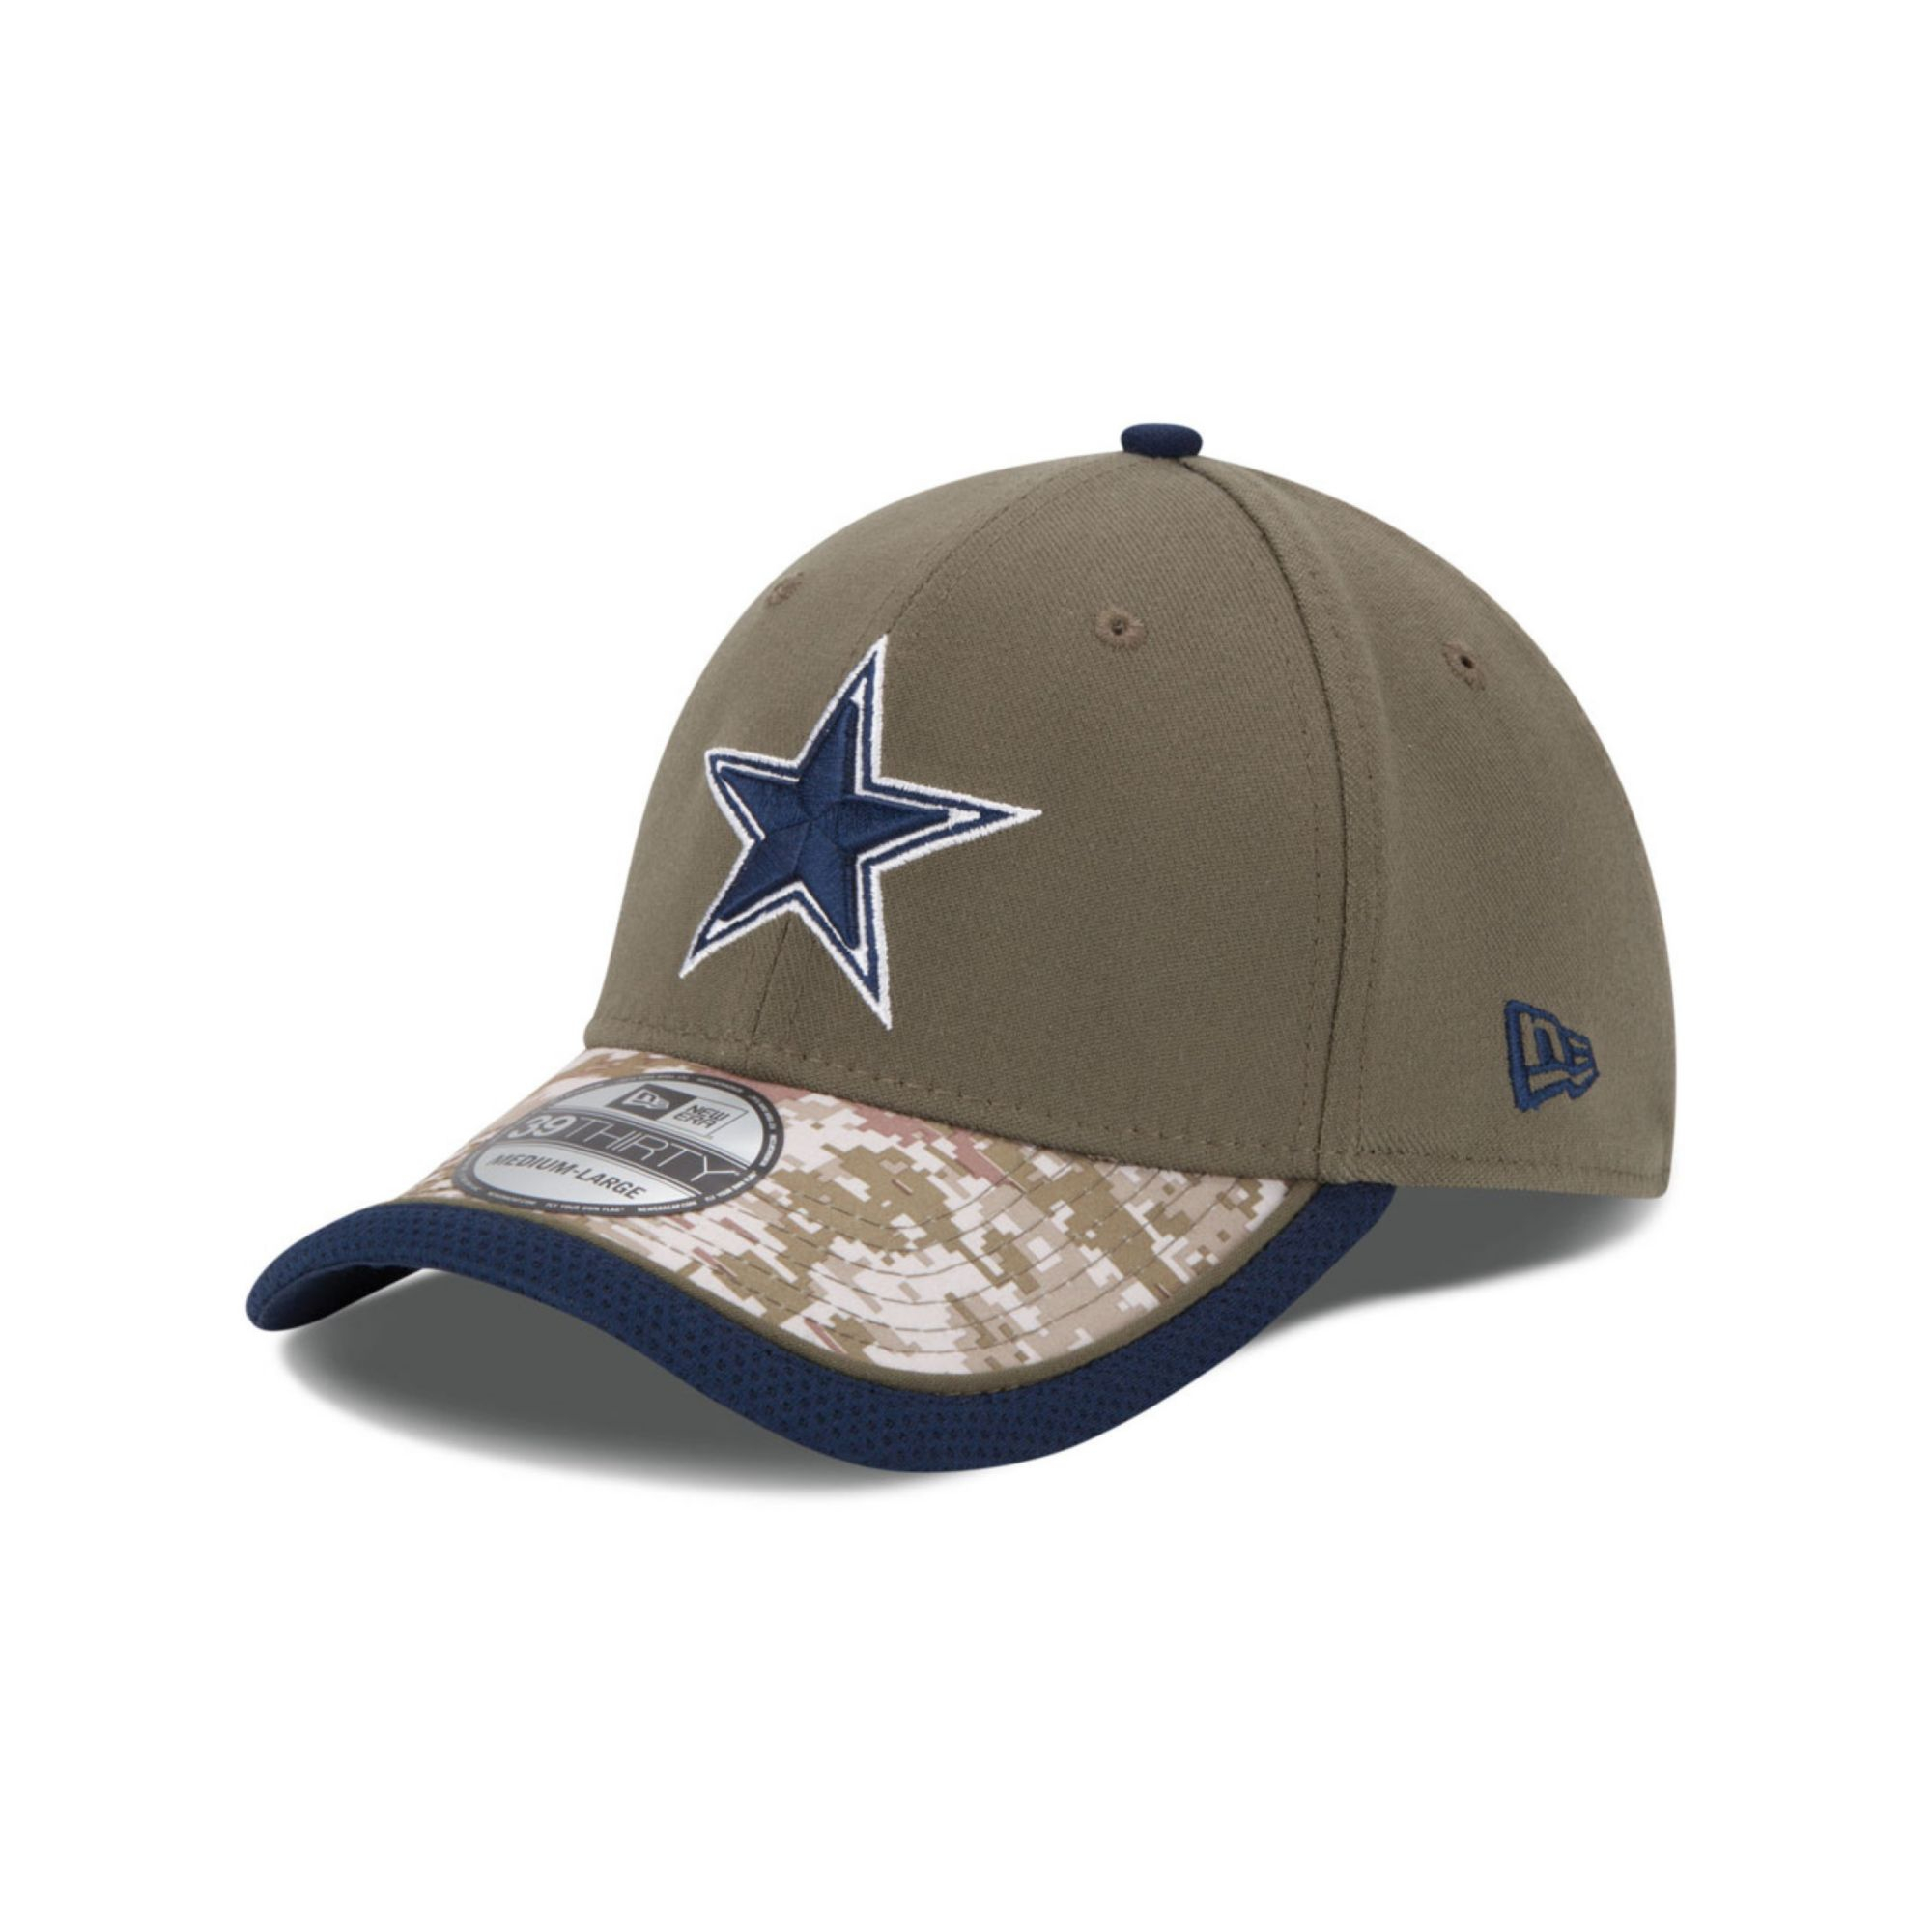 242af684b65 ... switzerland lyst ktz dallas cowboys salute to service 39thirty cap in  green 0b6d3 8a772